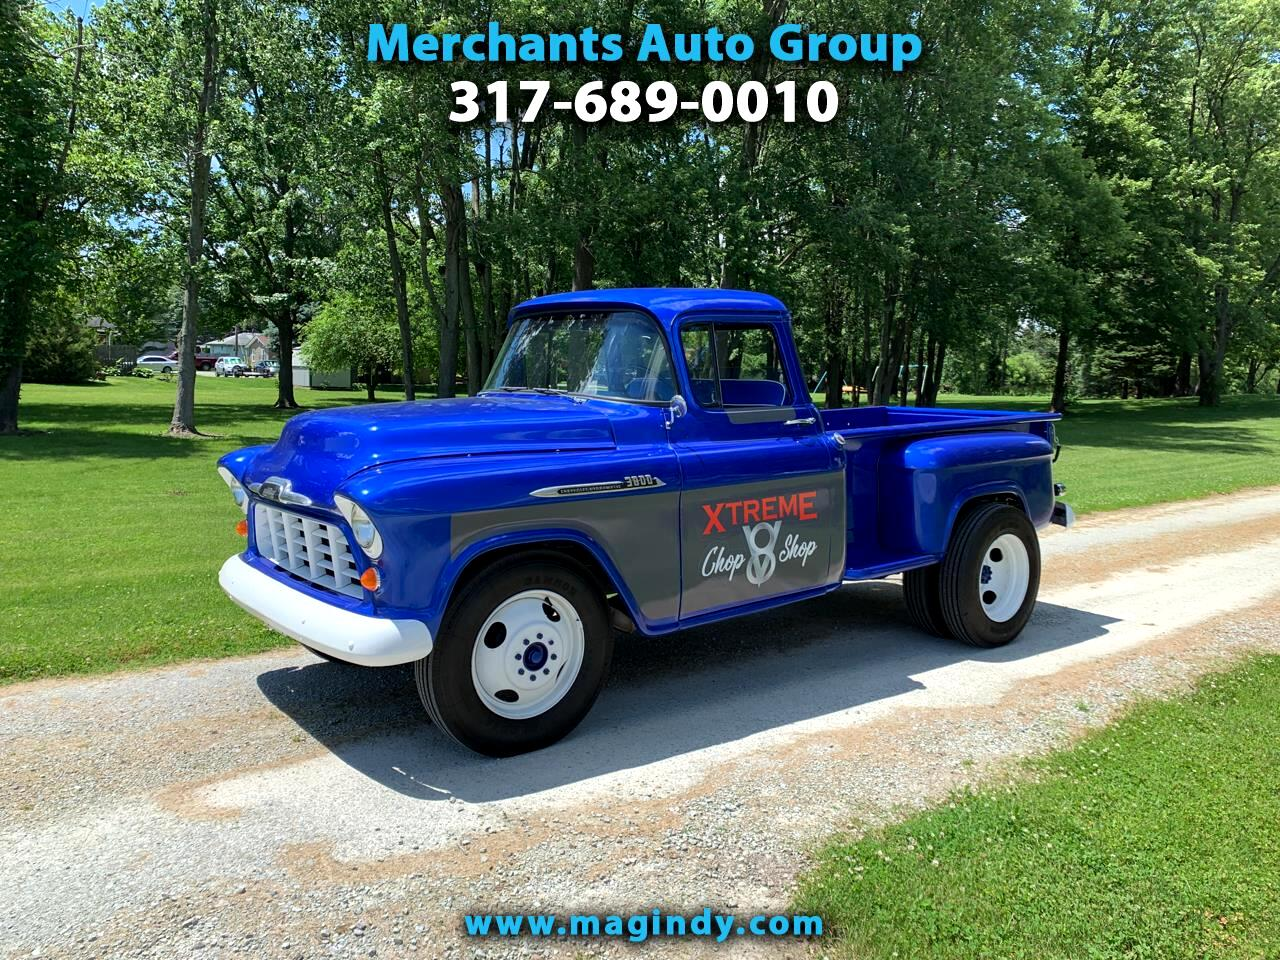 1956 Chevrolet Pickup Custom 3800 1 Ton Dually